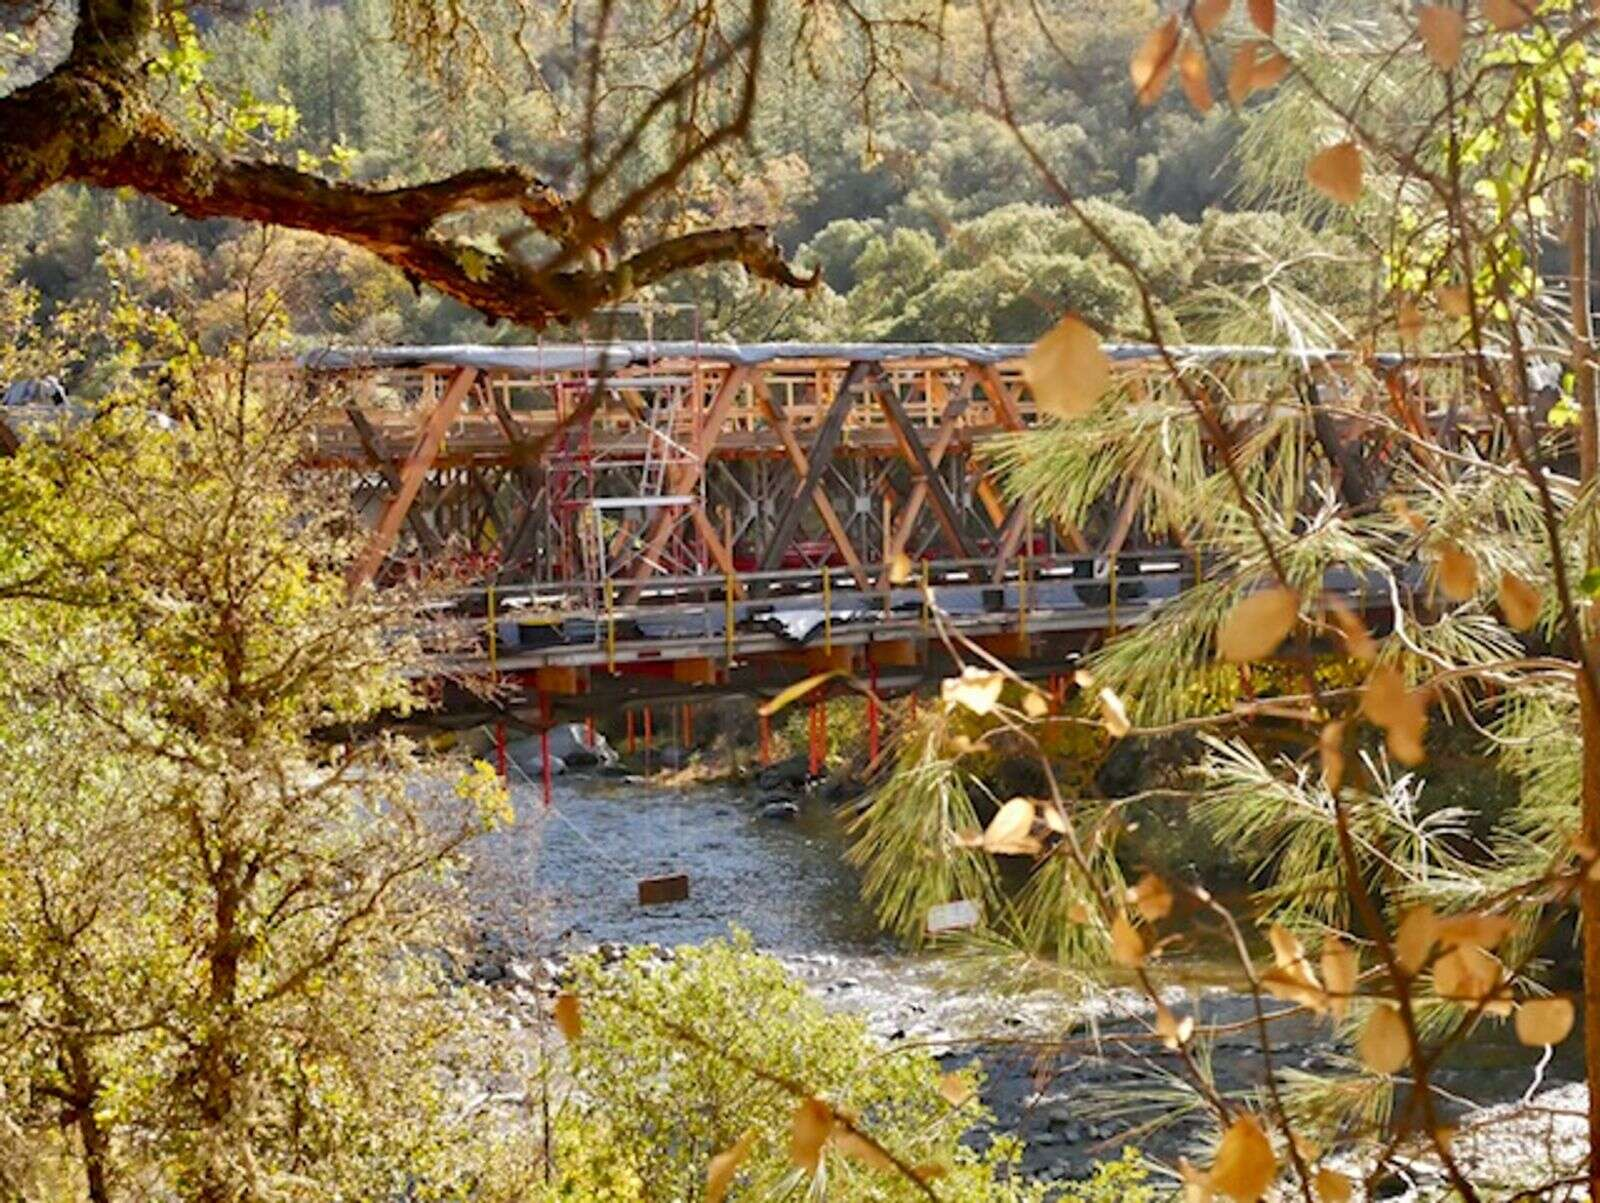 As the leaves fall, the Covered Bridge at Bridgeport continues to be rebuilt. | Submitted by Ruth Goodin